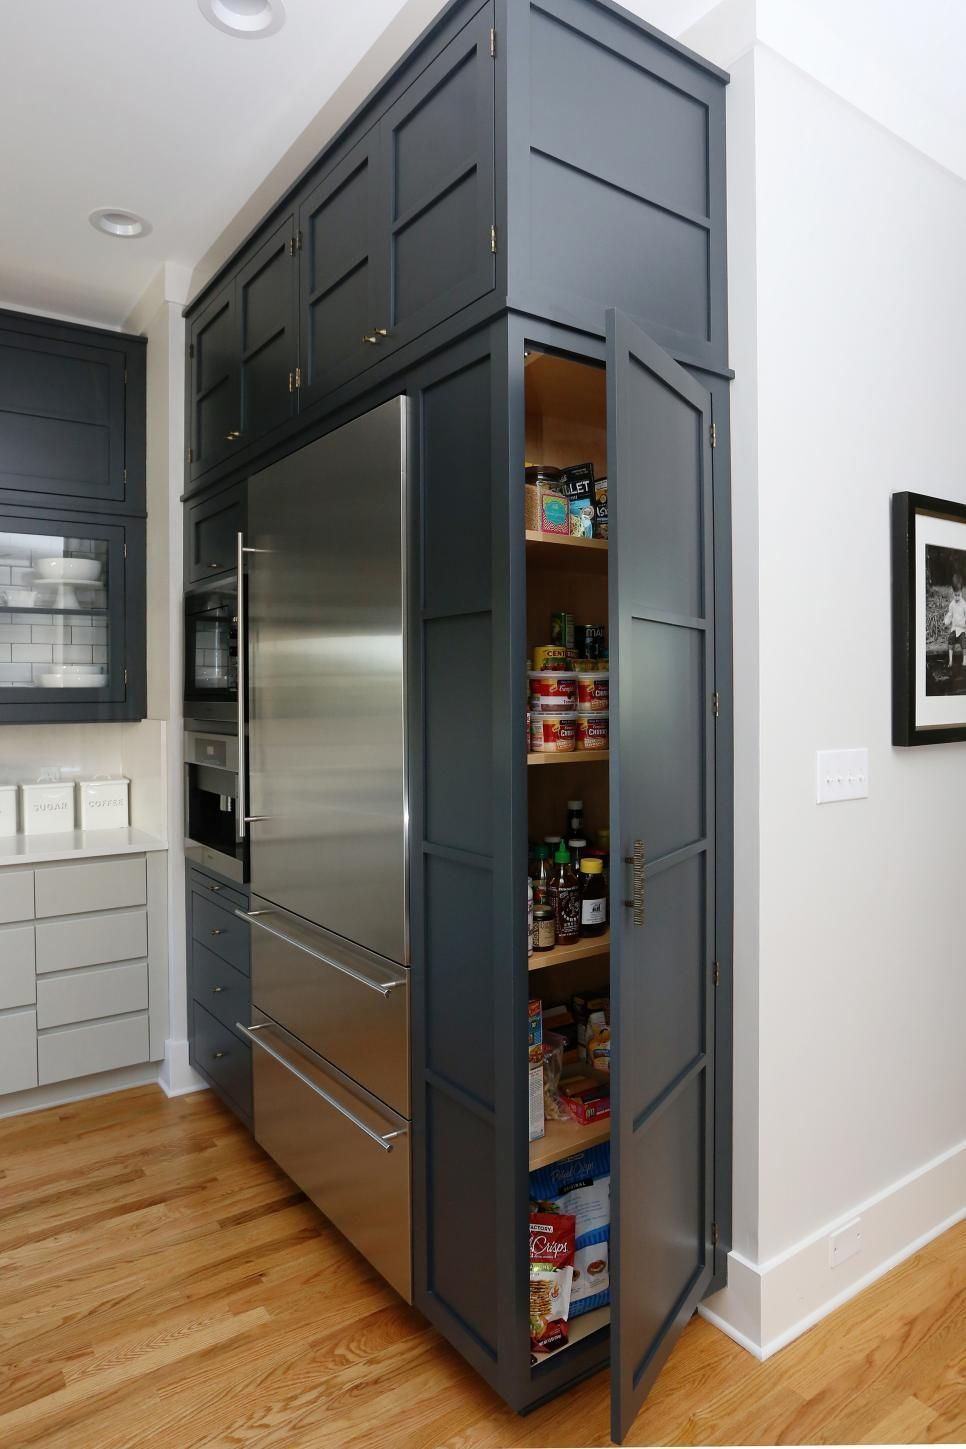 Kitchen Cabinets 121 With Images Kitchen Cabinet Design Kitchen Design Farmhouse Kitchen Cabinets